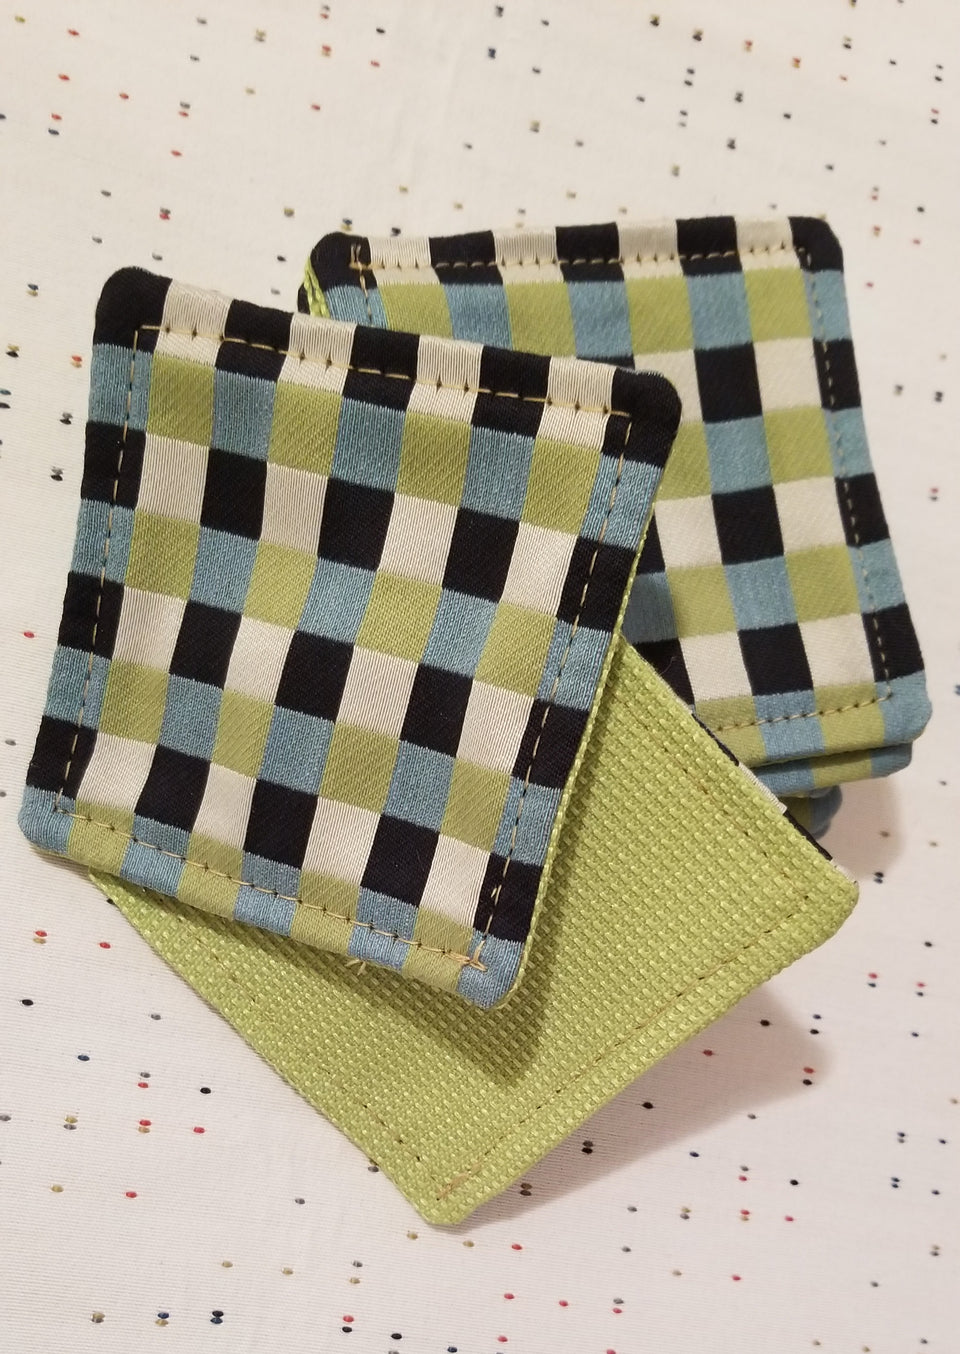 Chuck black, white, lime green, and turquoise gingham check patterned coasters front back detail.